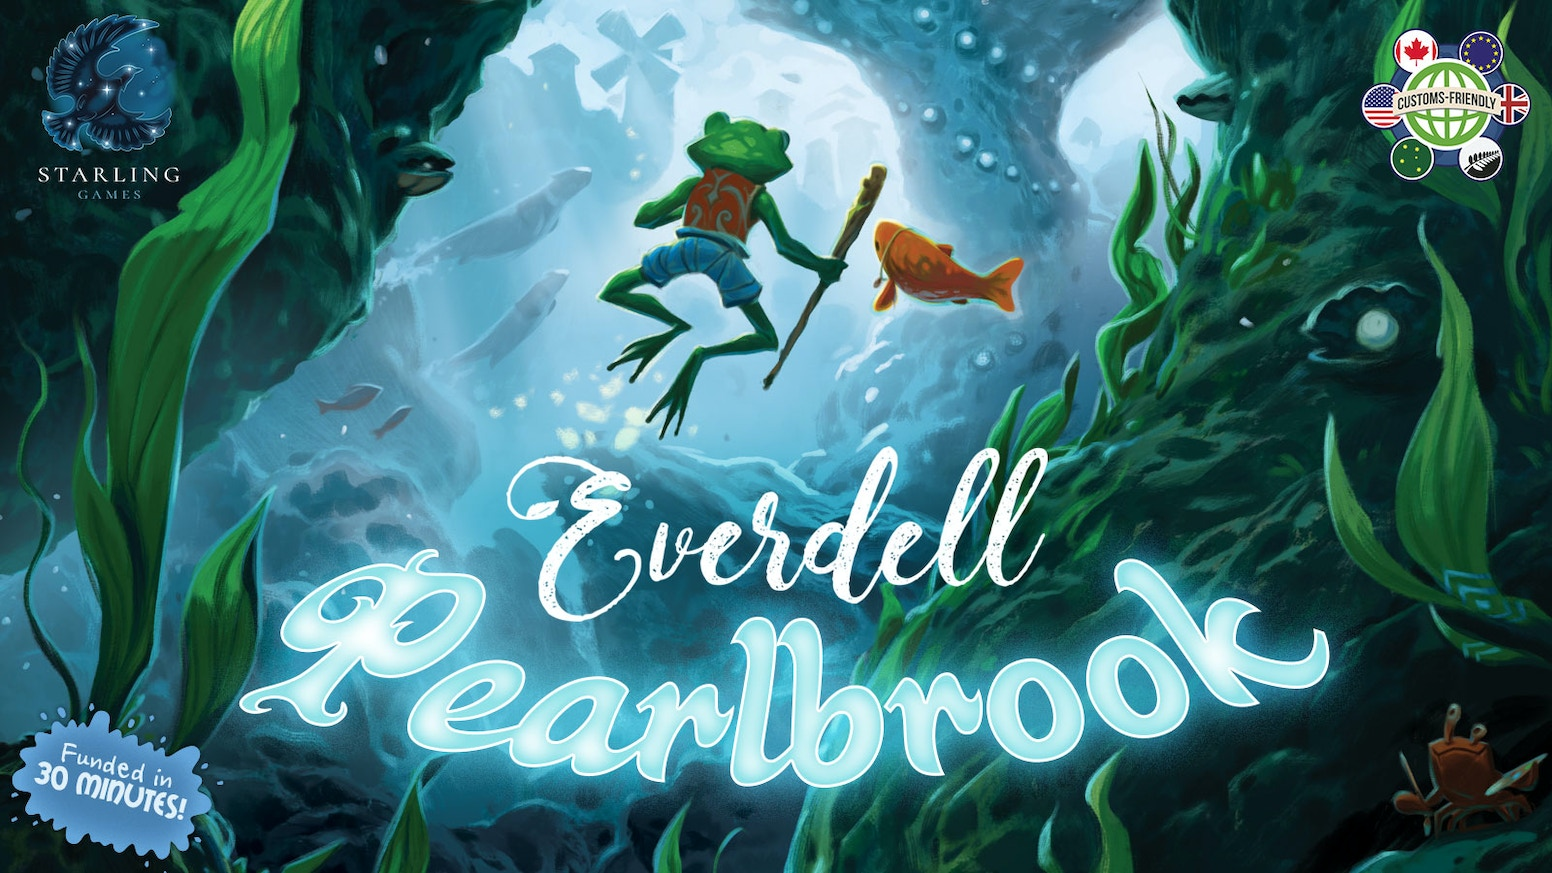 Discover a new world under the river in Pearlbrook, the first expansion for Everdell.